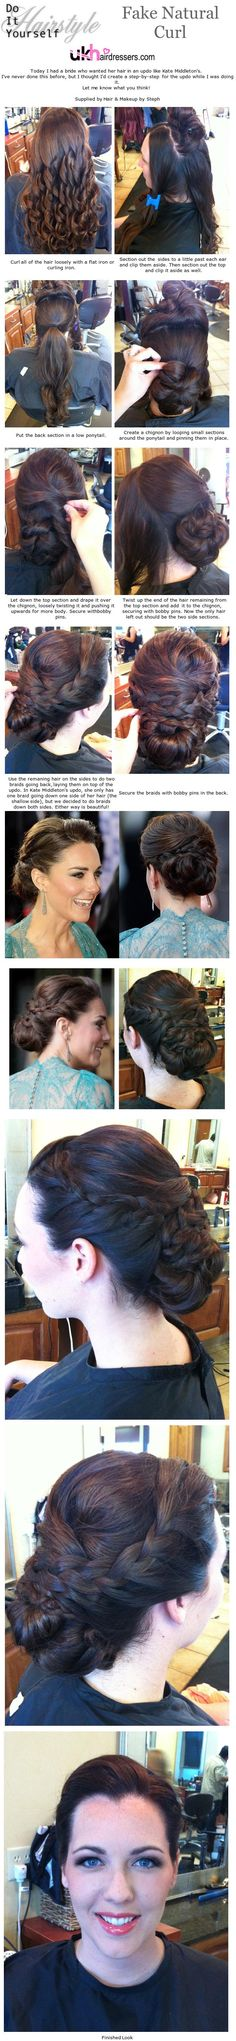 DIY HAIRStyles - Kate Middleton Updo     ANOTHER FABULOUS DIY HAIRSTYLE BY STEPHANIE BRINKERHOFF      WWW.UKHAIRDRESSERS.COM